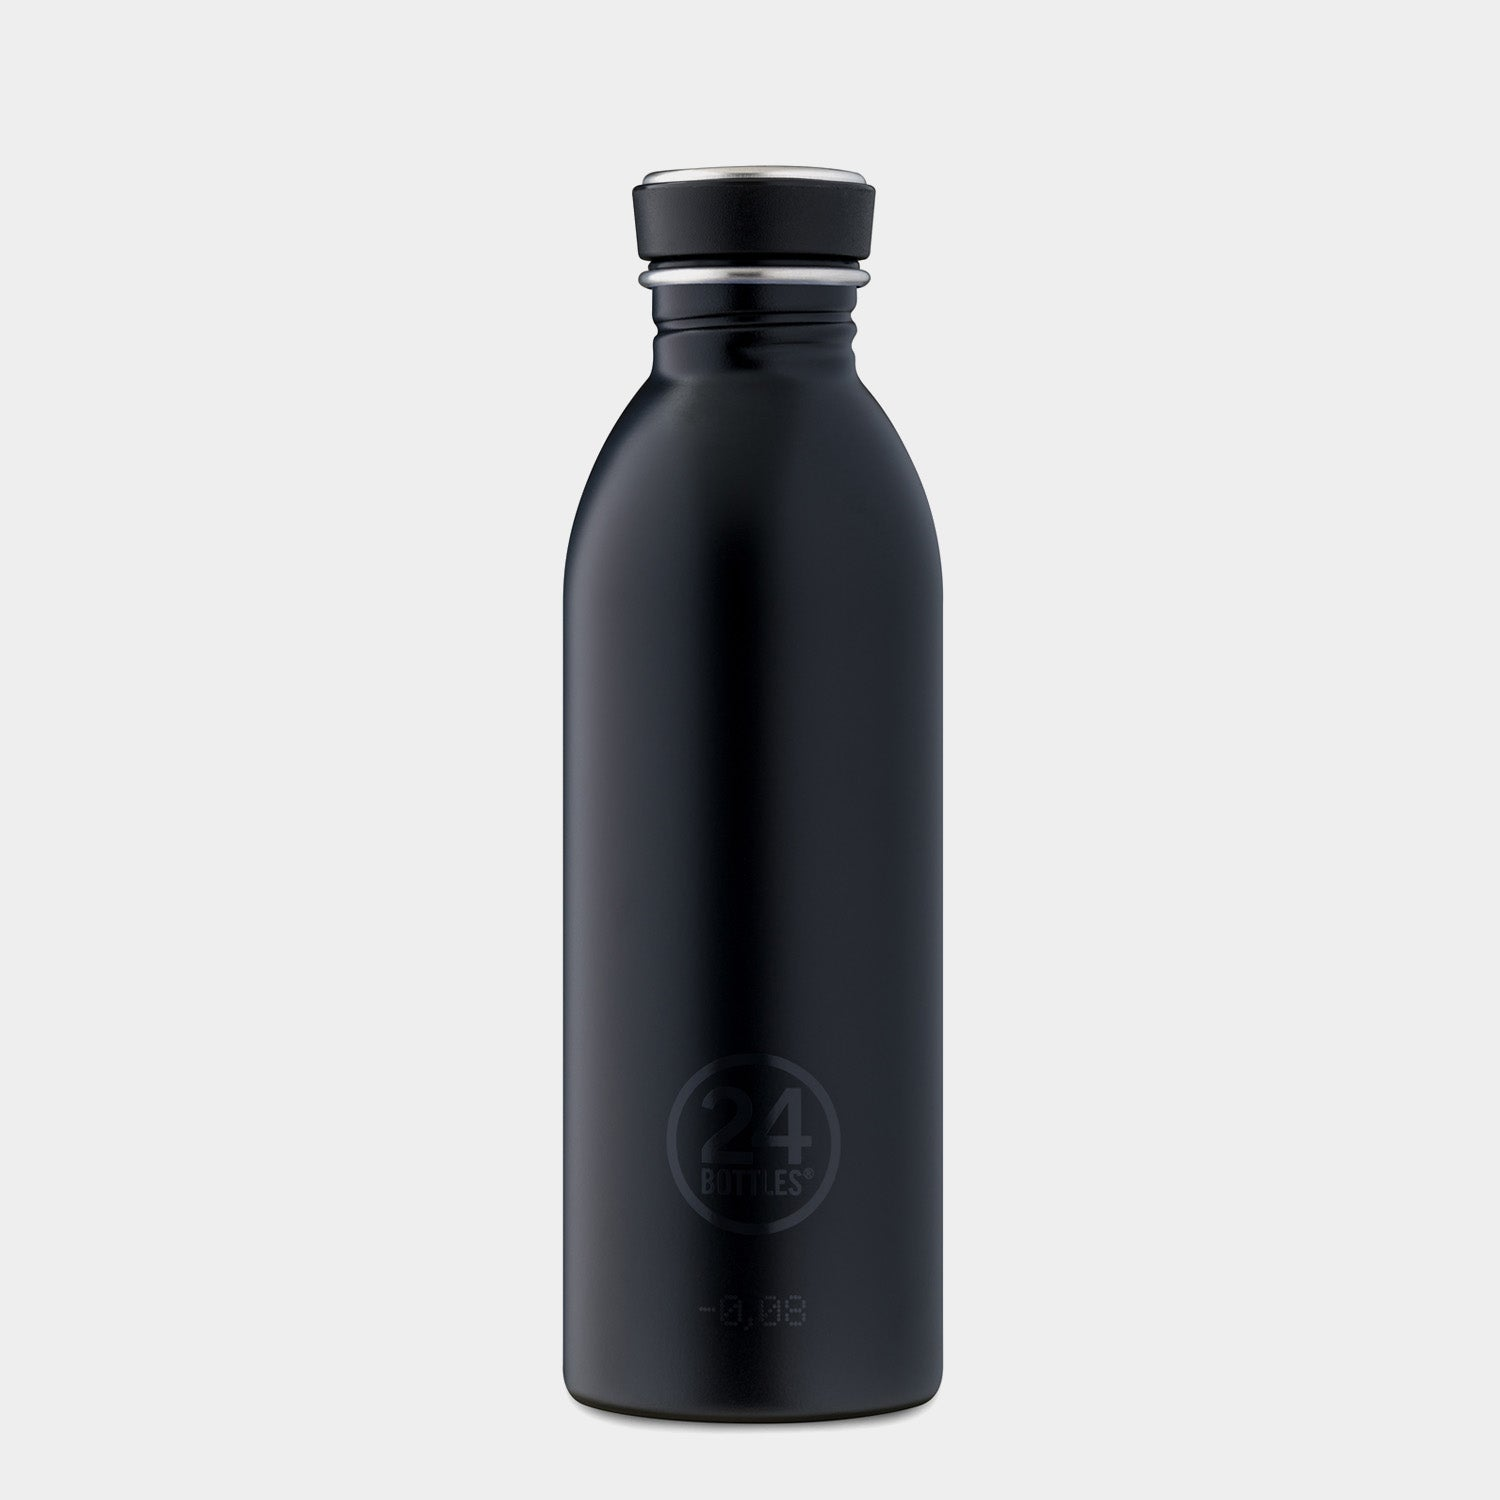 24Bottles Tuxedo Black Urban Bottle - 500ml